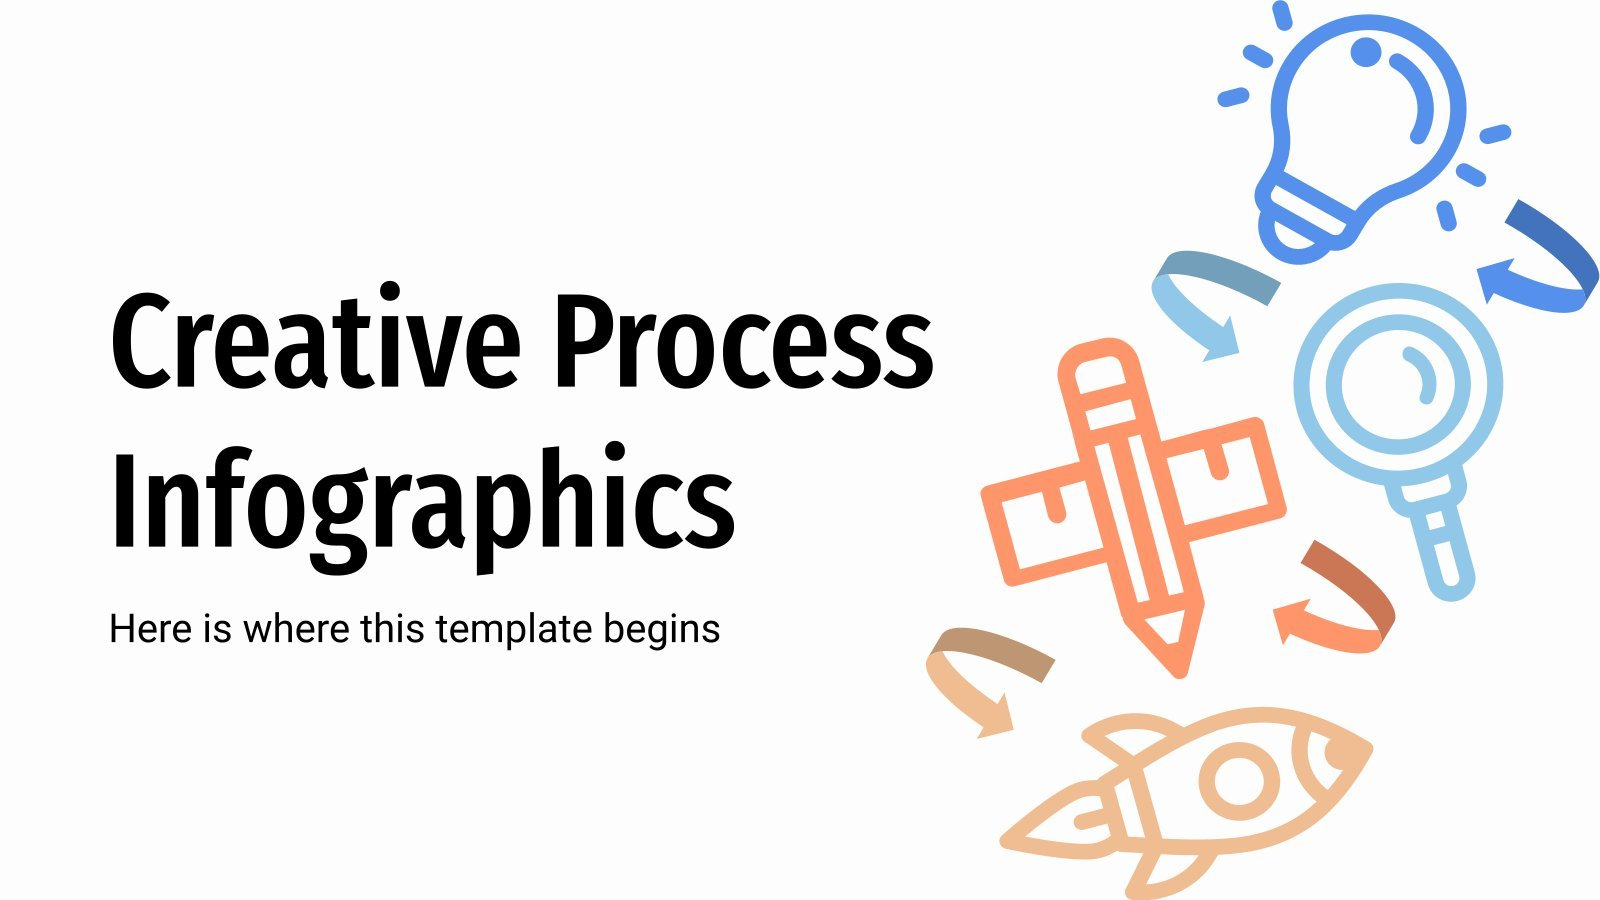 Creative Process Infographics presentation template